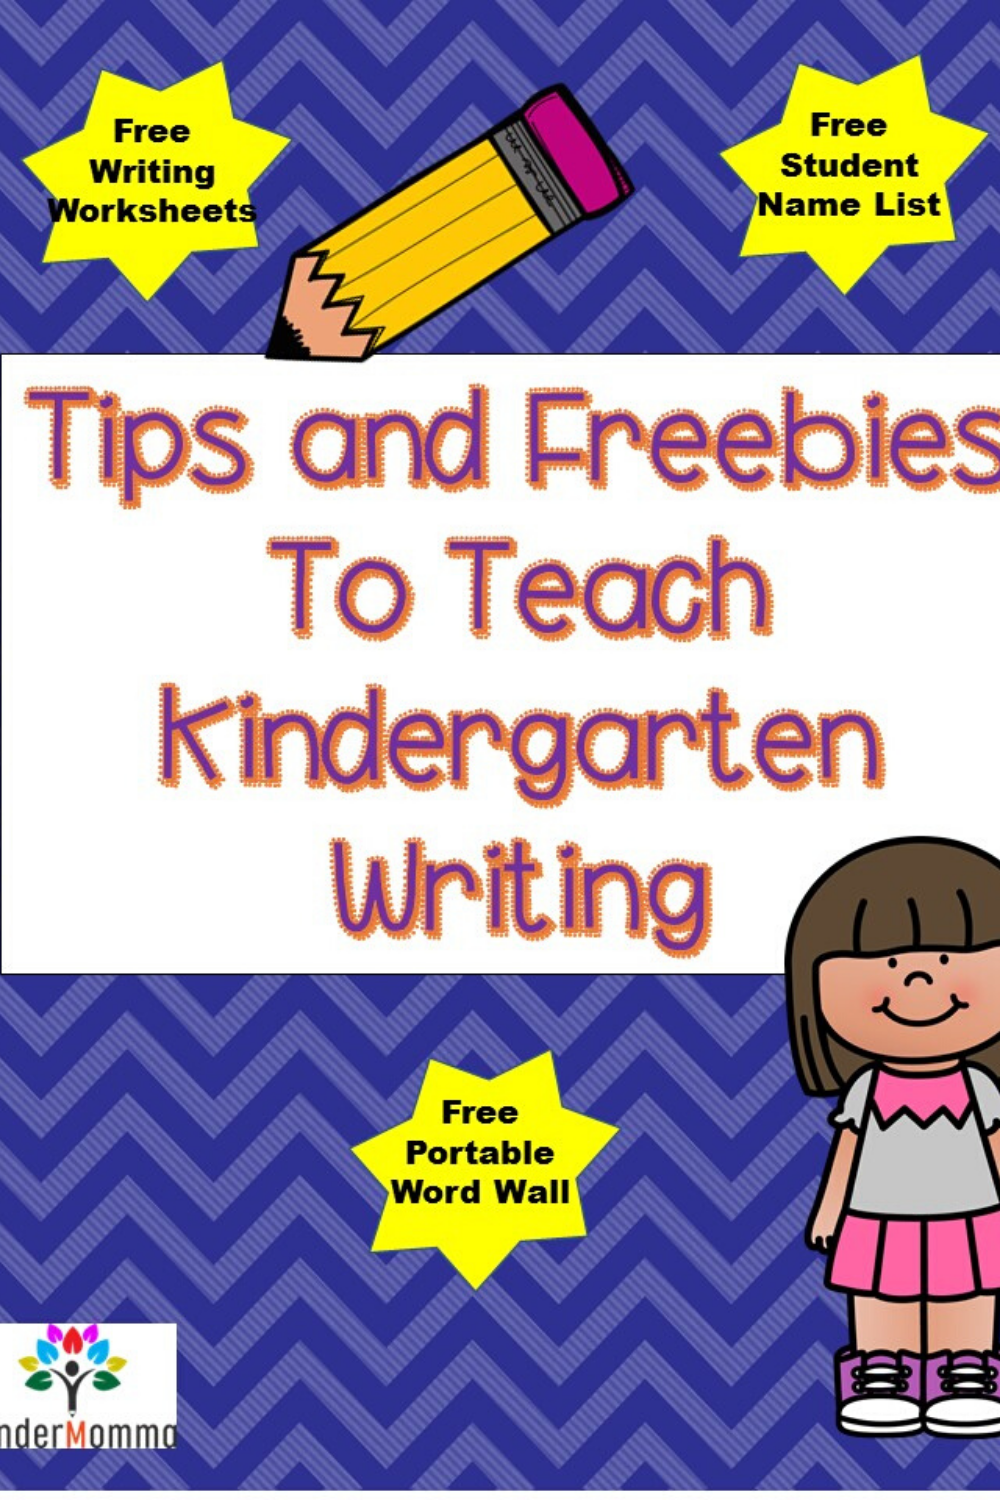 How To Teach Opinion Writing For Kids Kindermomma Com Kindergarten Writing Teaching Kindergarten Writing Teaching [ 1500 x 1000 Pixel ]